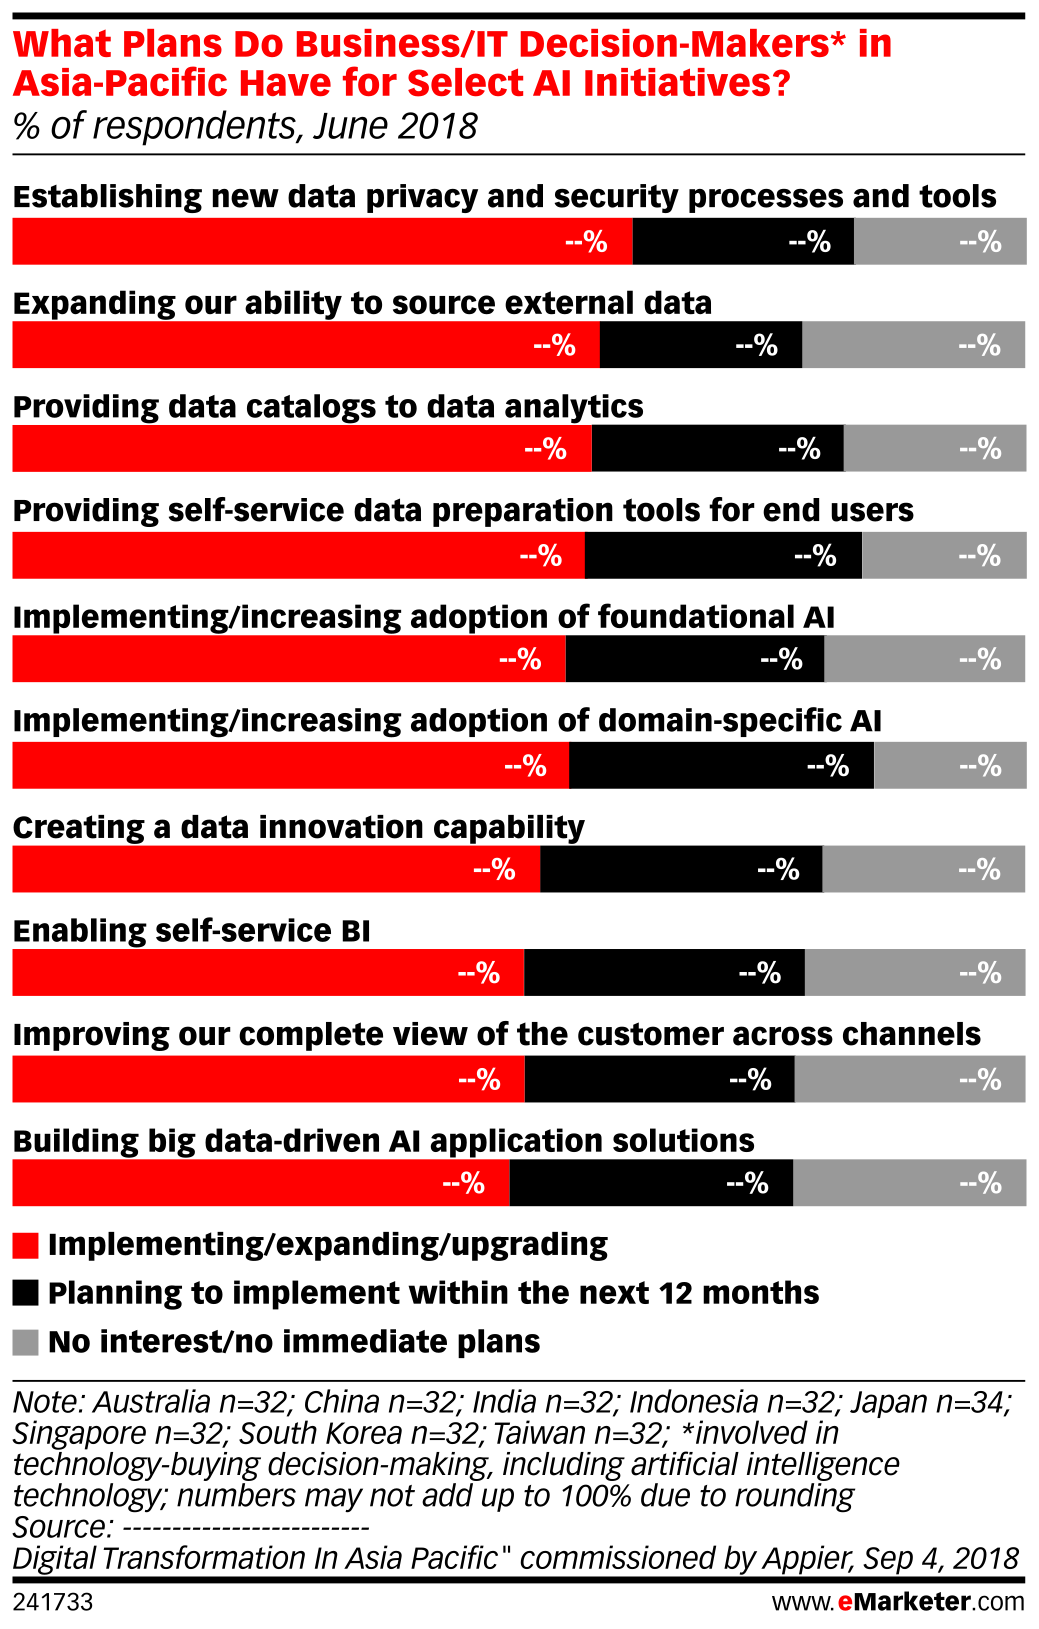 What Plans Do Business/IT Decision-Makers* in Asia-Pacific Have for Select AI Initiatives? (% of respondents, June 2018)